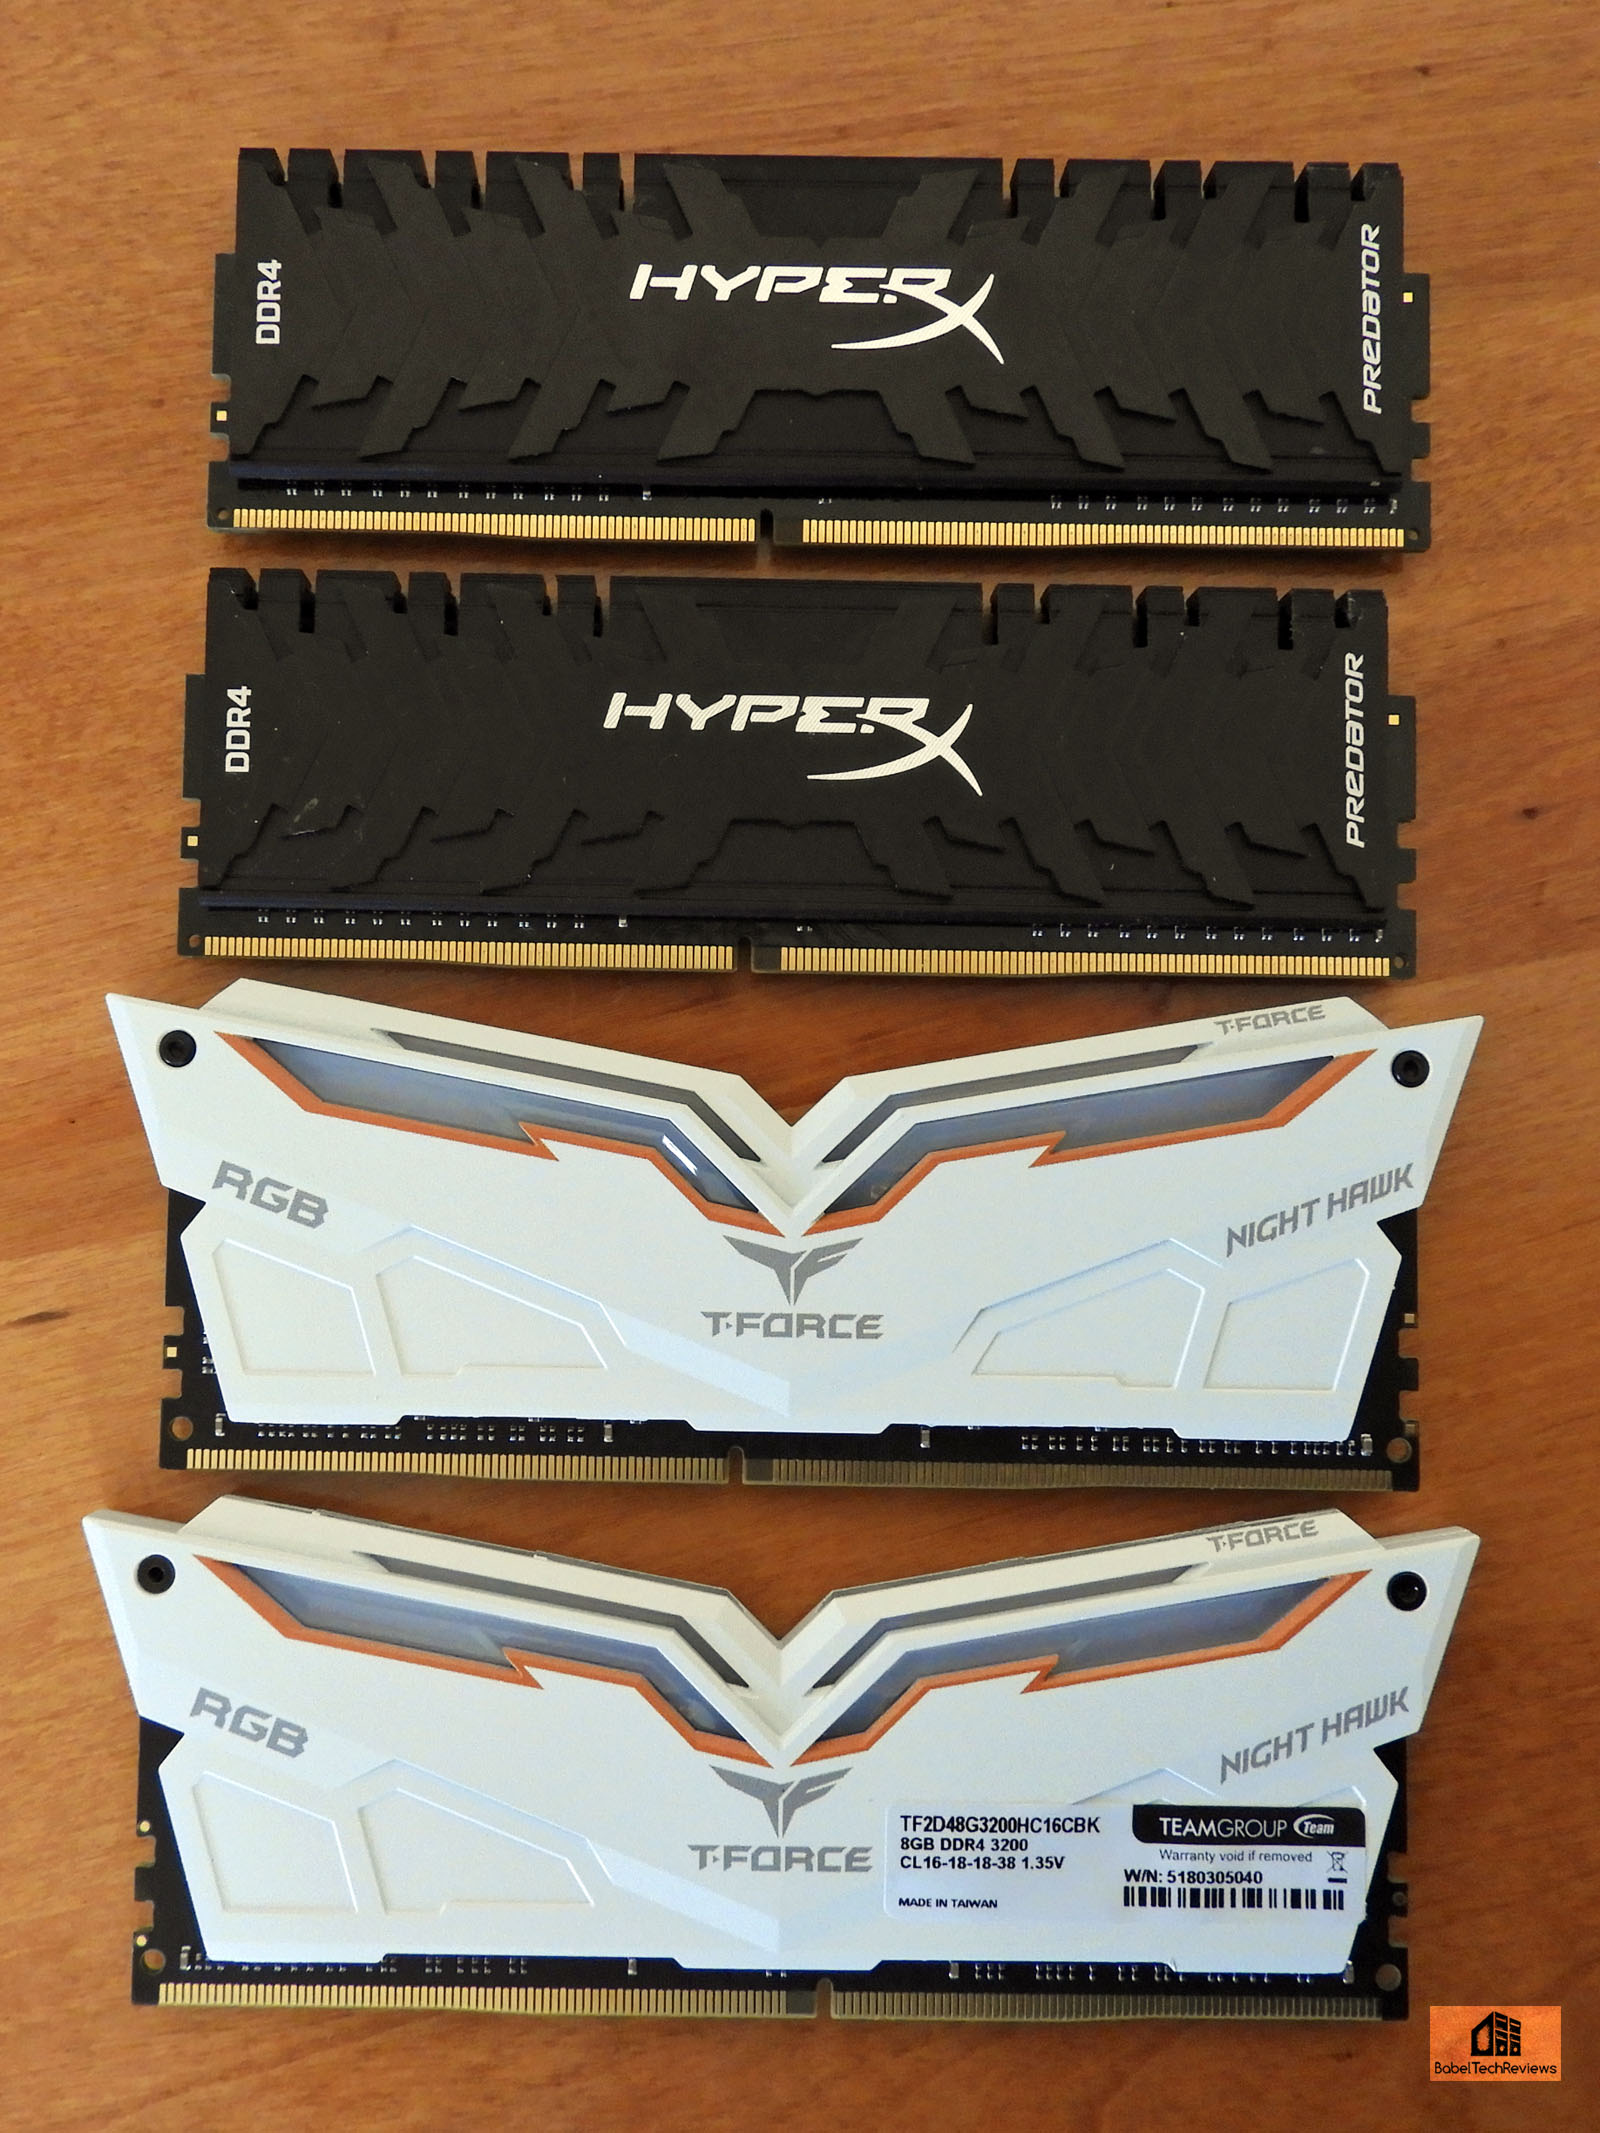 Team Group Night Hawk DDR 3200 MHz 16 GB kit review